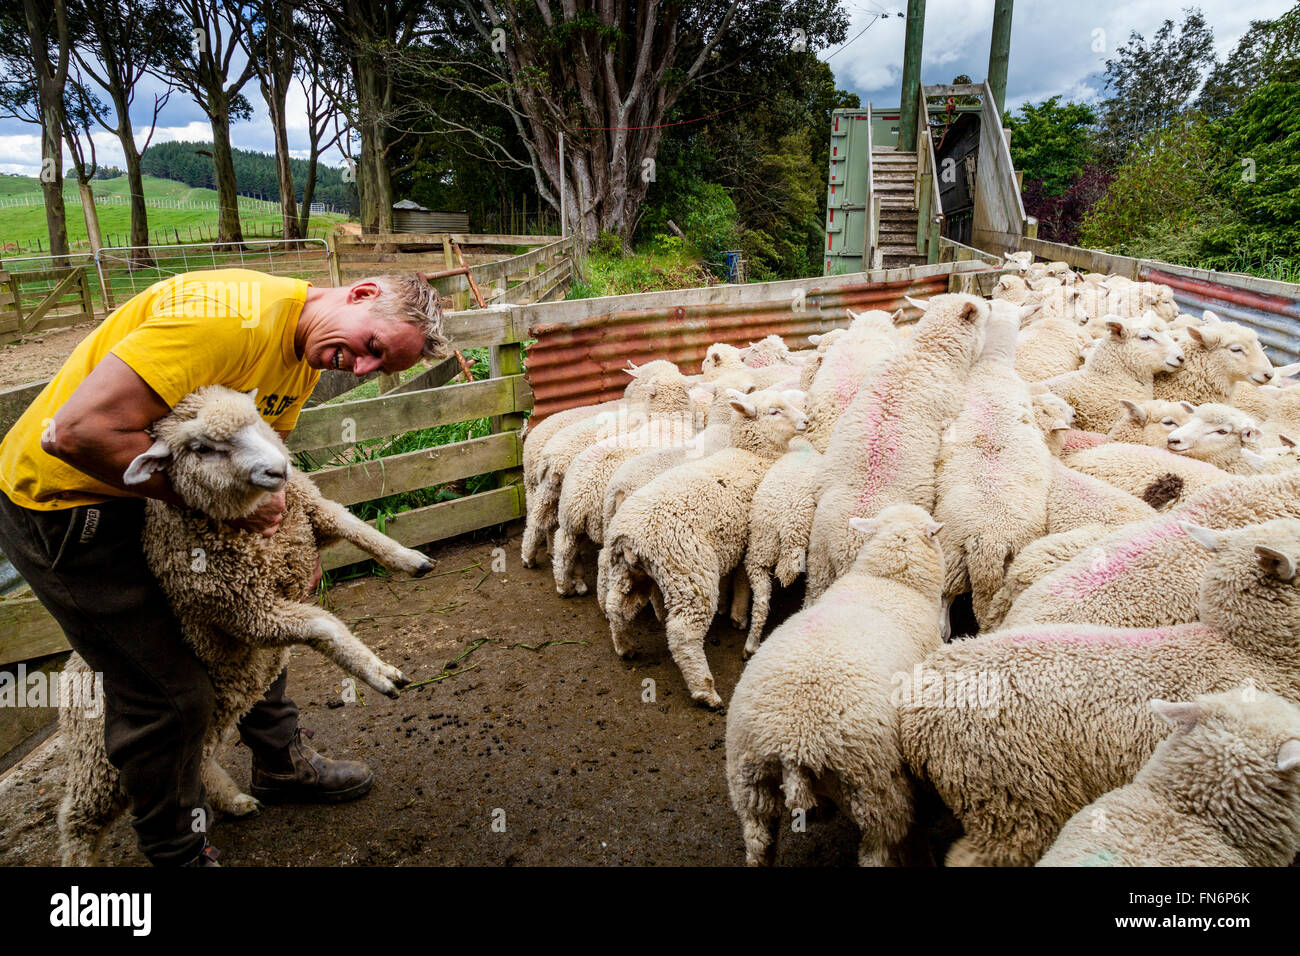 Sheep Being Loaded On To A Lorry, Sheep Farm, Pukekohe, New Zealand - Stock Image